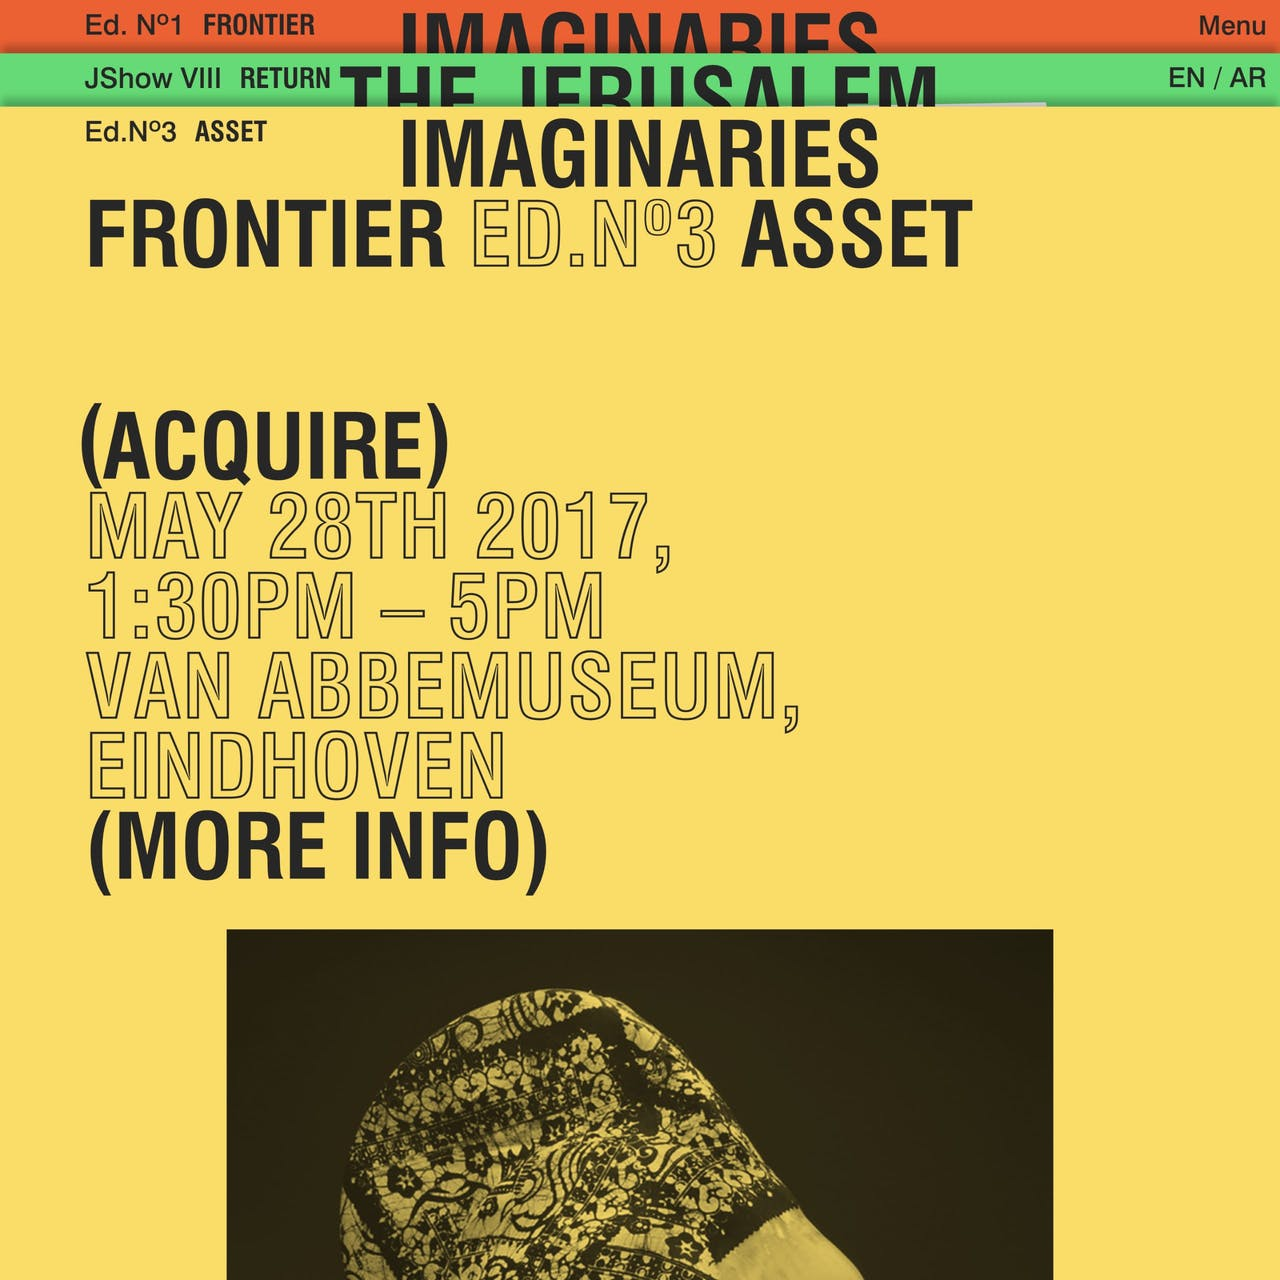 Frontier Imaginaries Website Screenshot